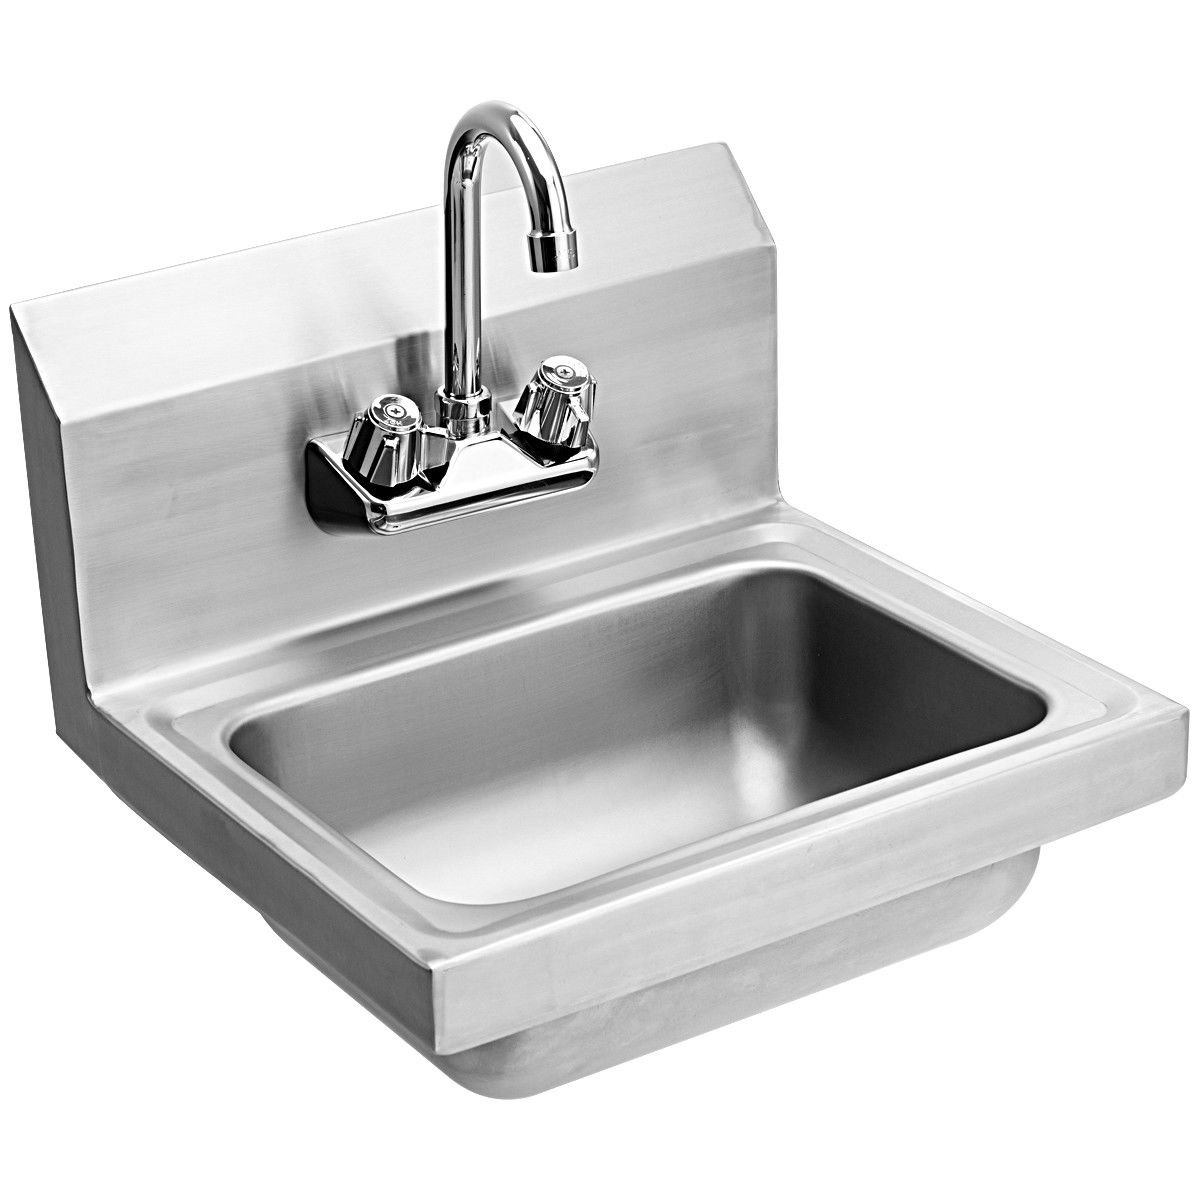 Stainless Steel Hand Wash Sink Washing Wall Mount Commercial